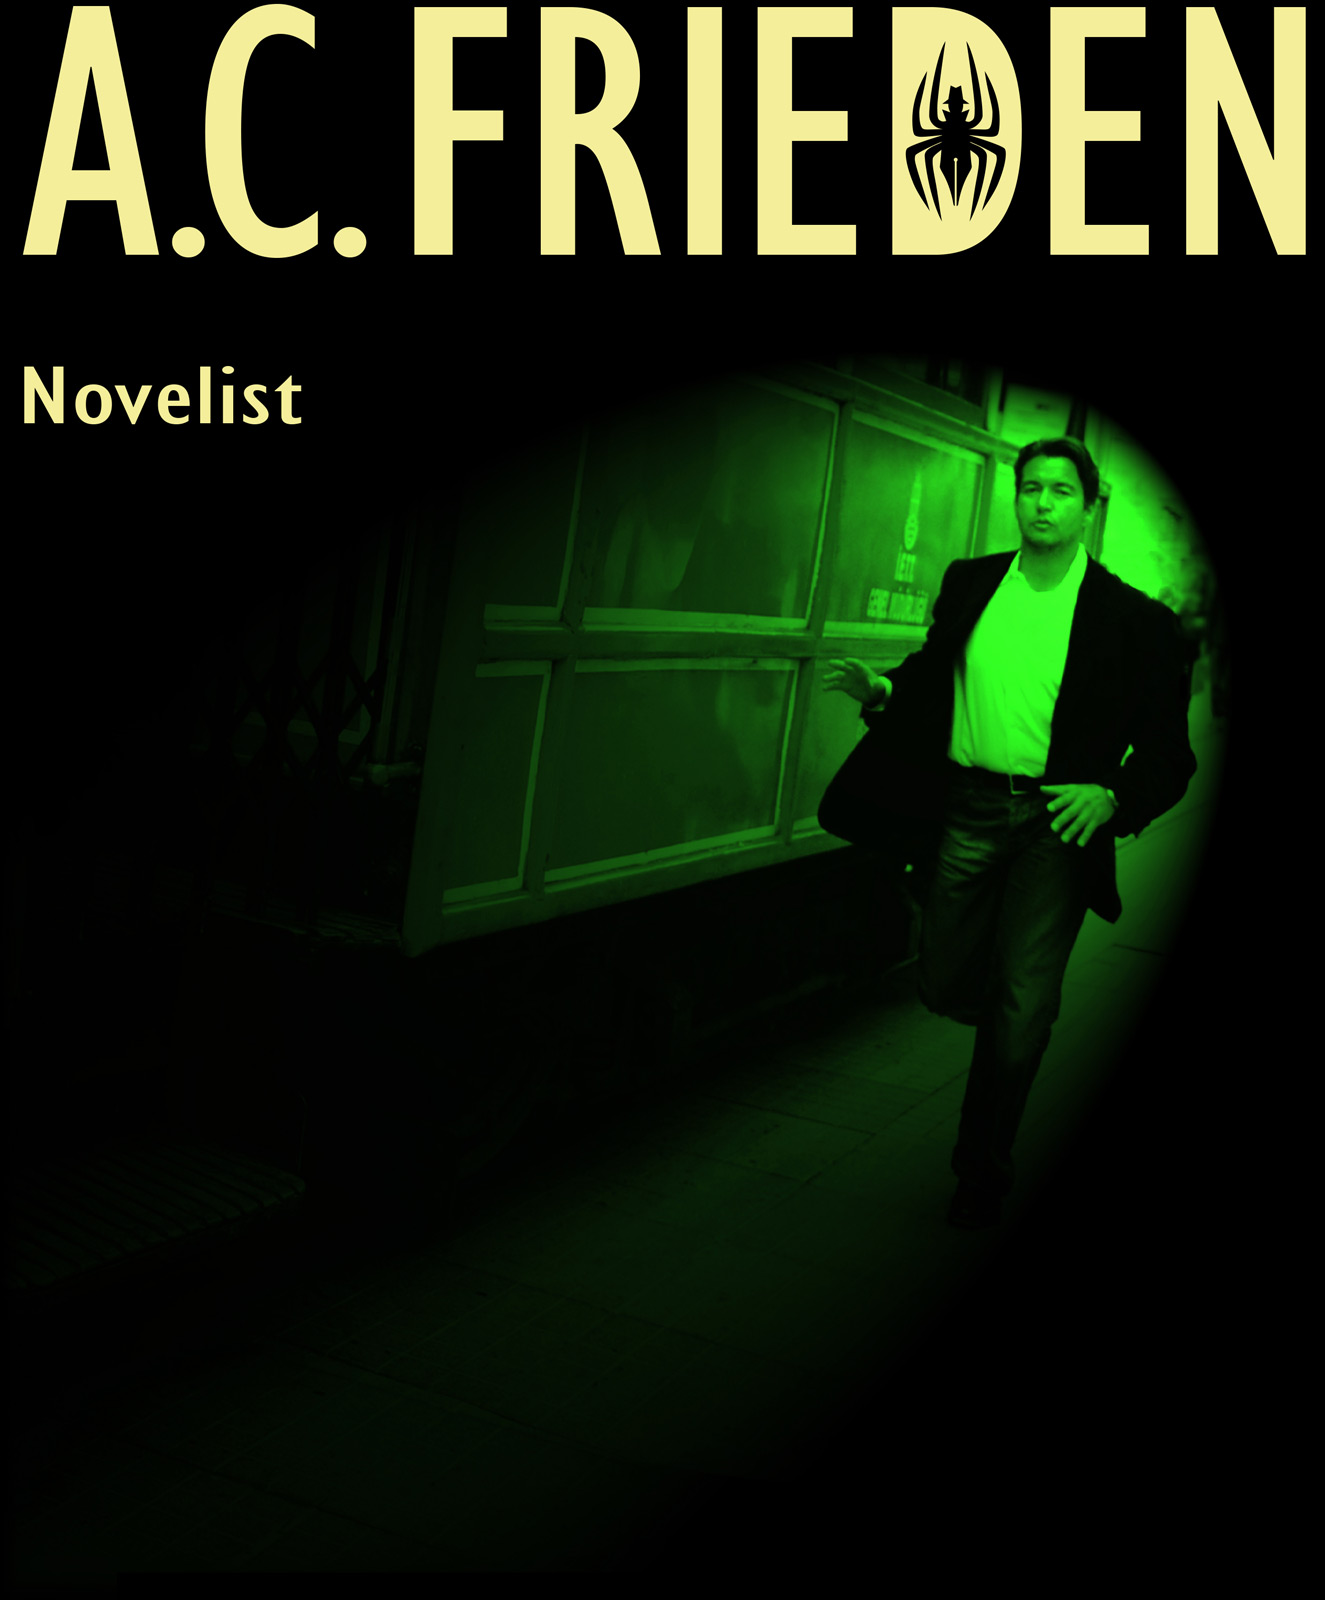 A.C. Frieden - Novelist - CLIGK to ENTER